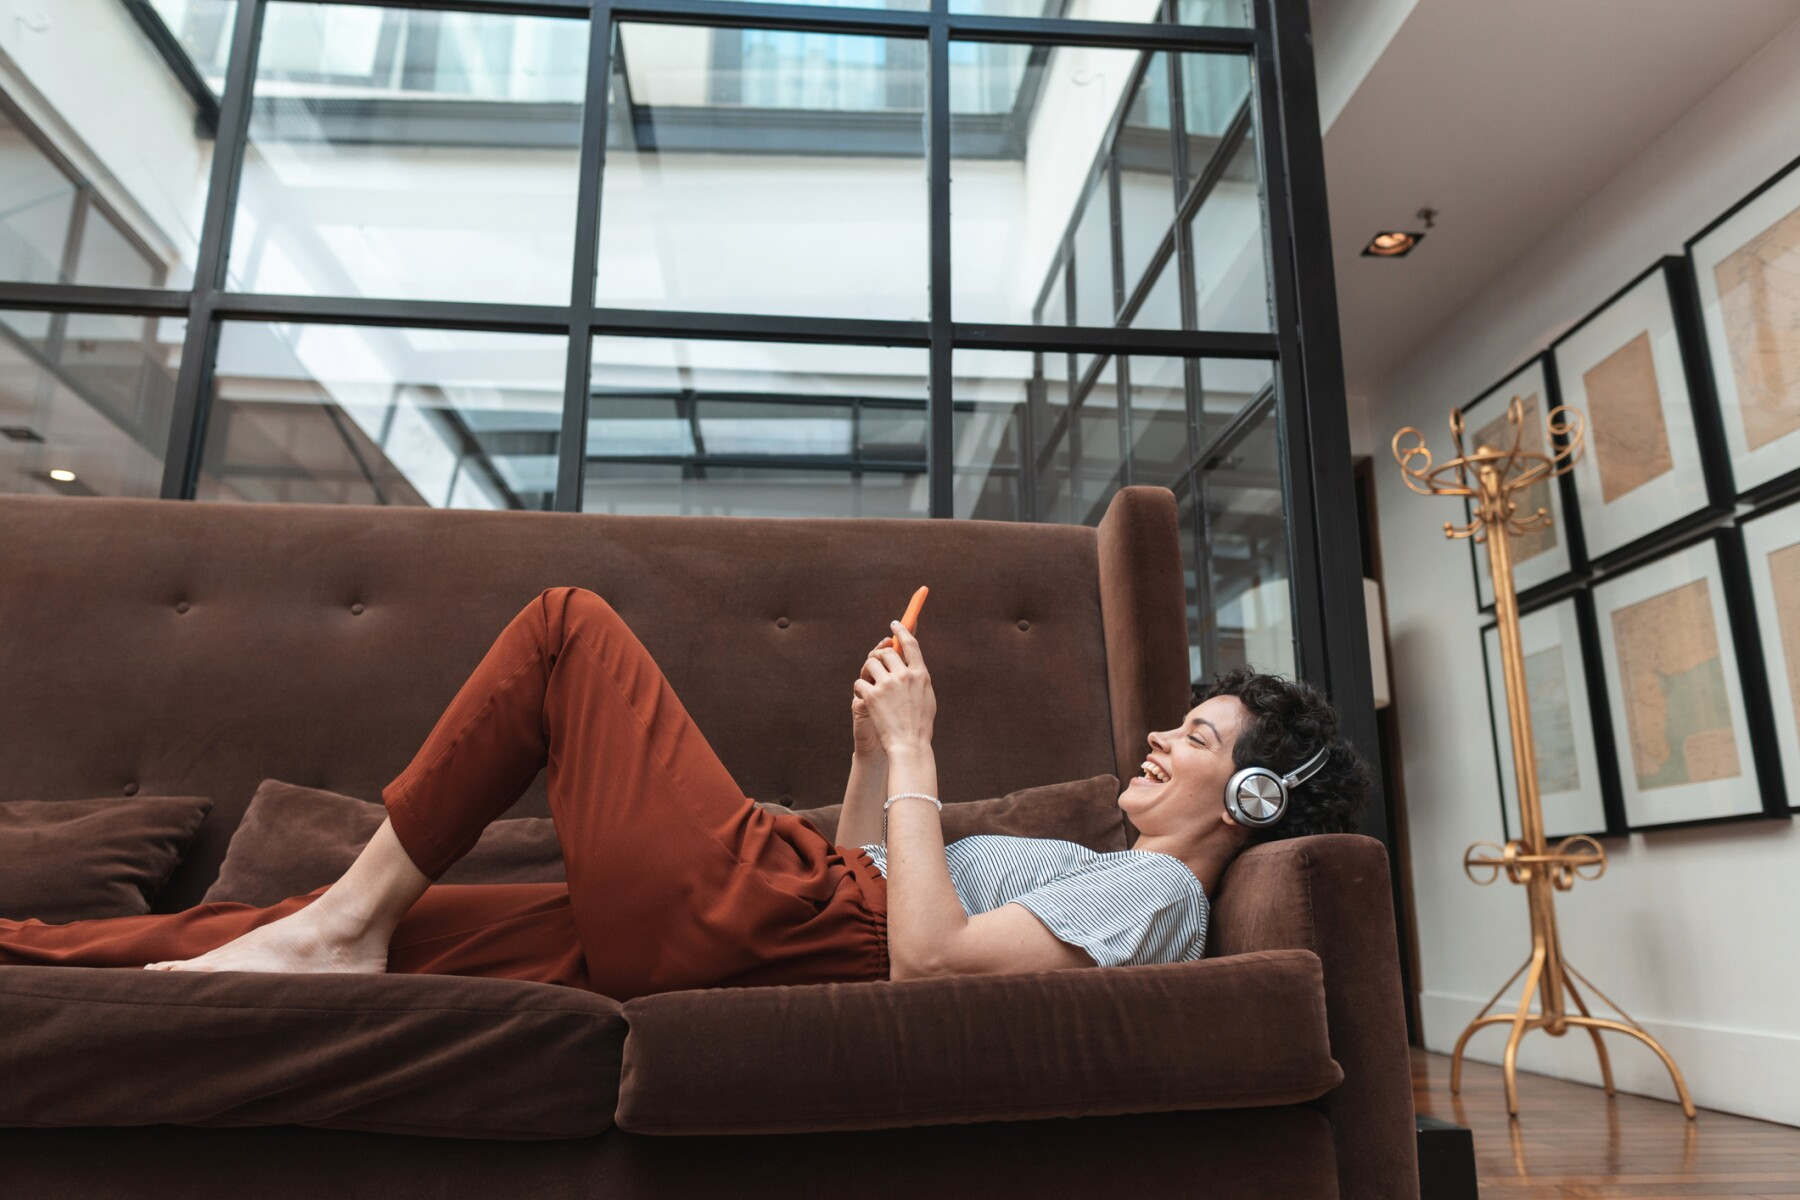 Woman lying on the couch listening to music on mp3 player